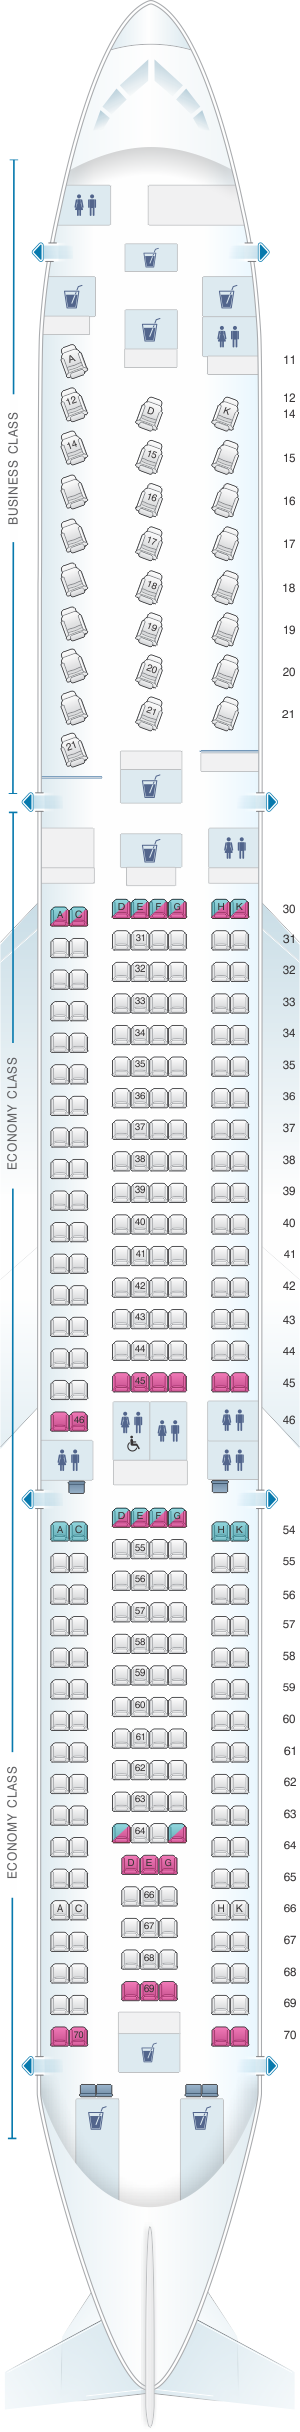 Seat map for Cathay Pacific Airways Airbus A340 300 (34B)